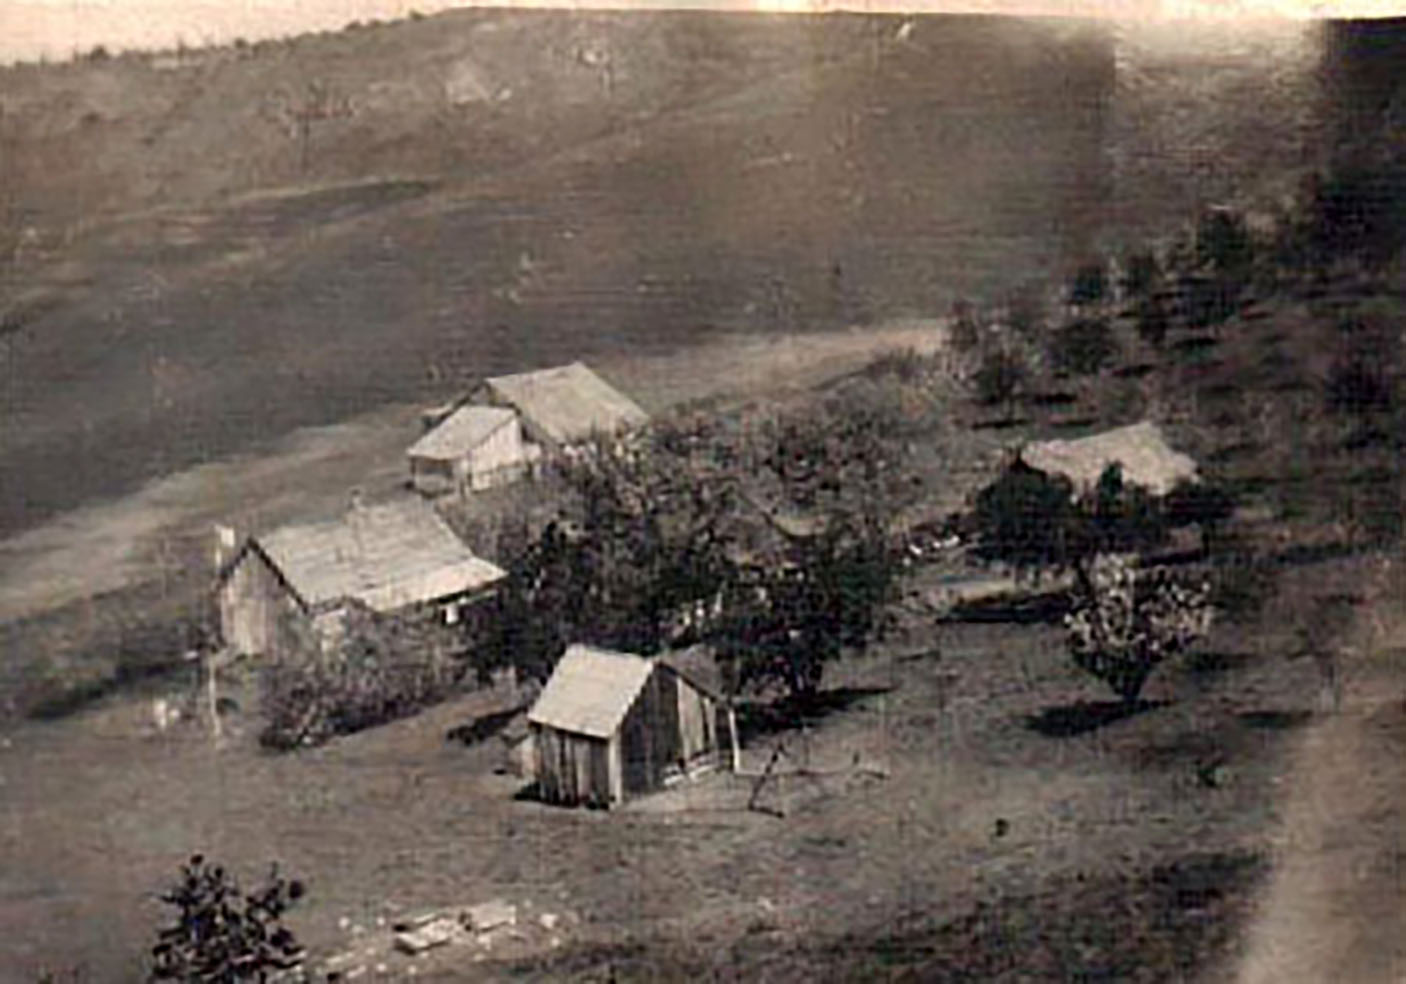 Langenbeck ranch_overview_1915.jpg